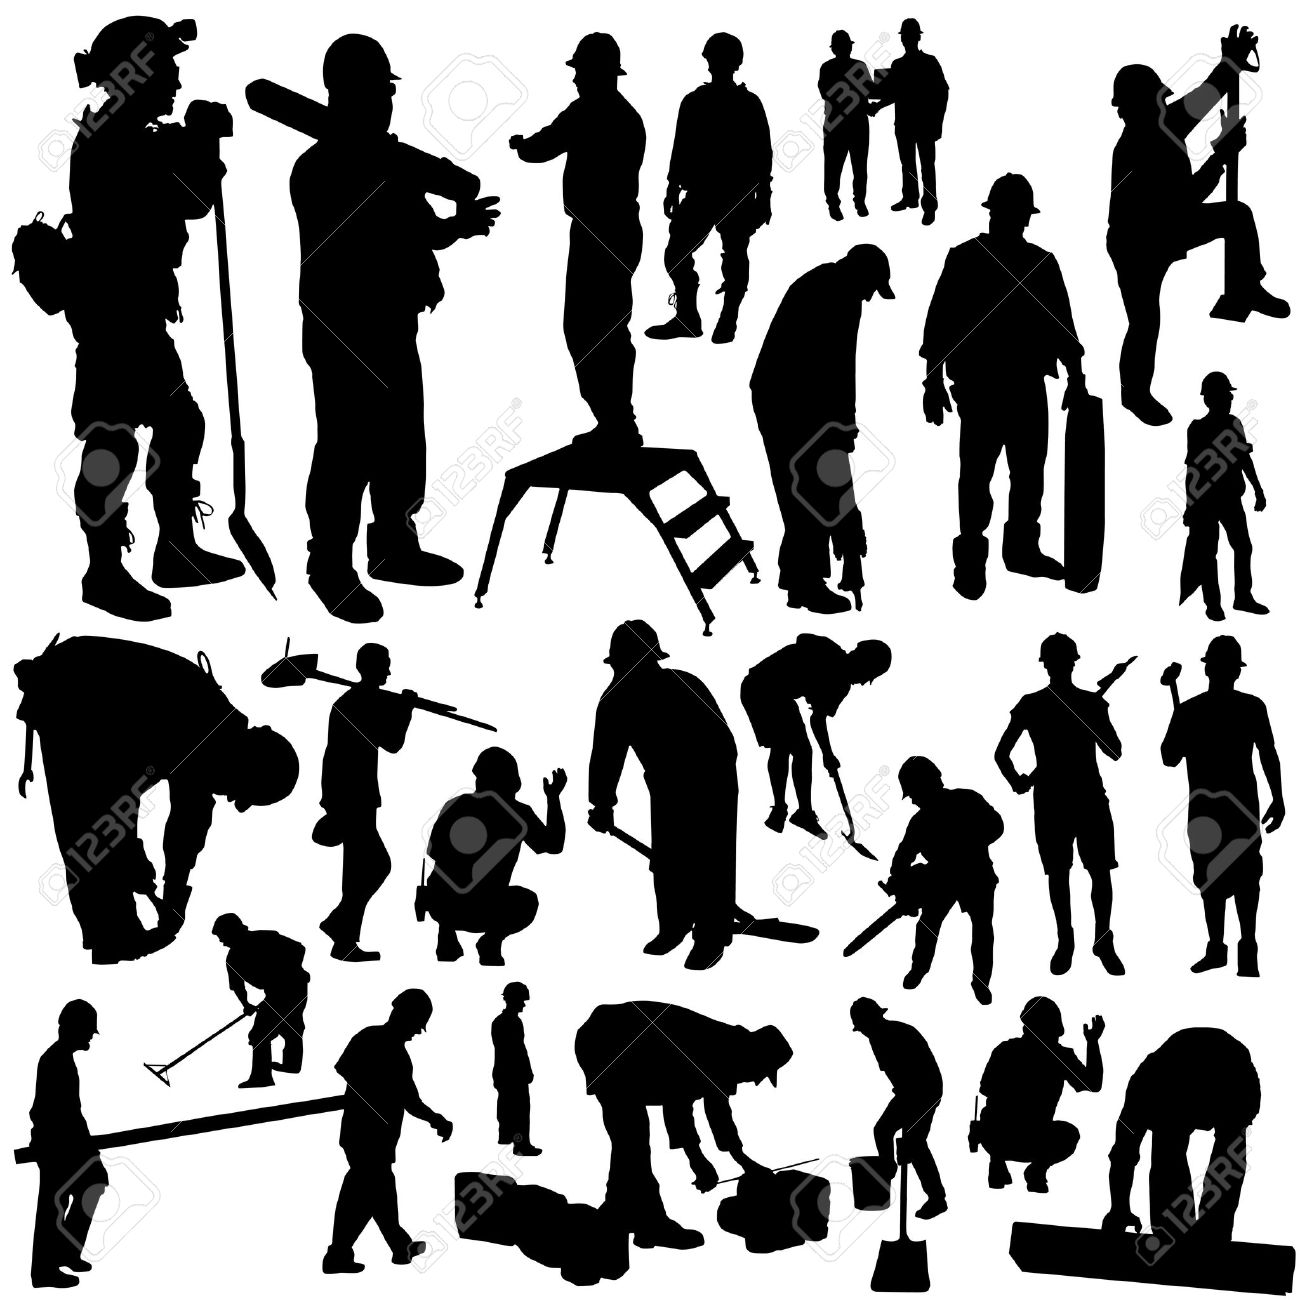 Construction Workers Vector Stock